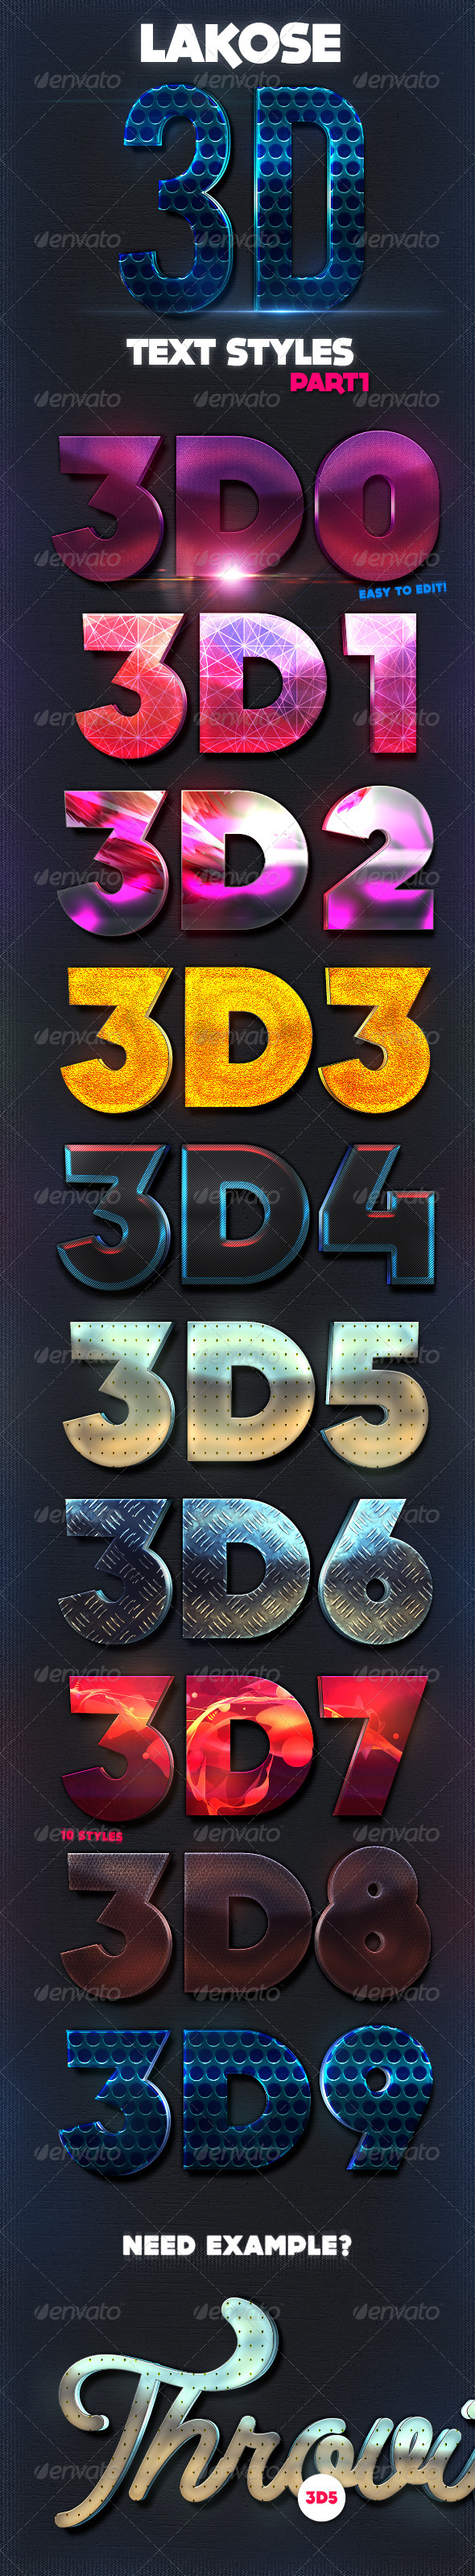 GraphicRiver Lakose 3D Text Styles Part 1 8296739